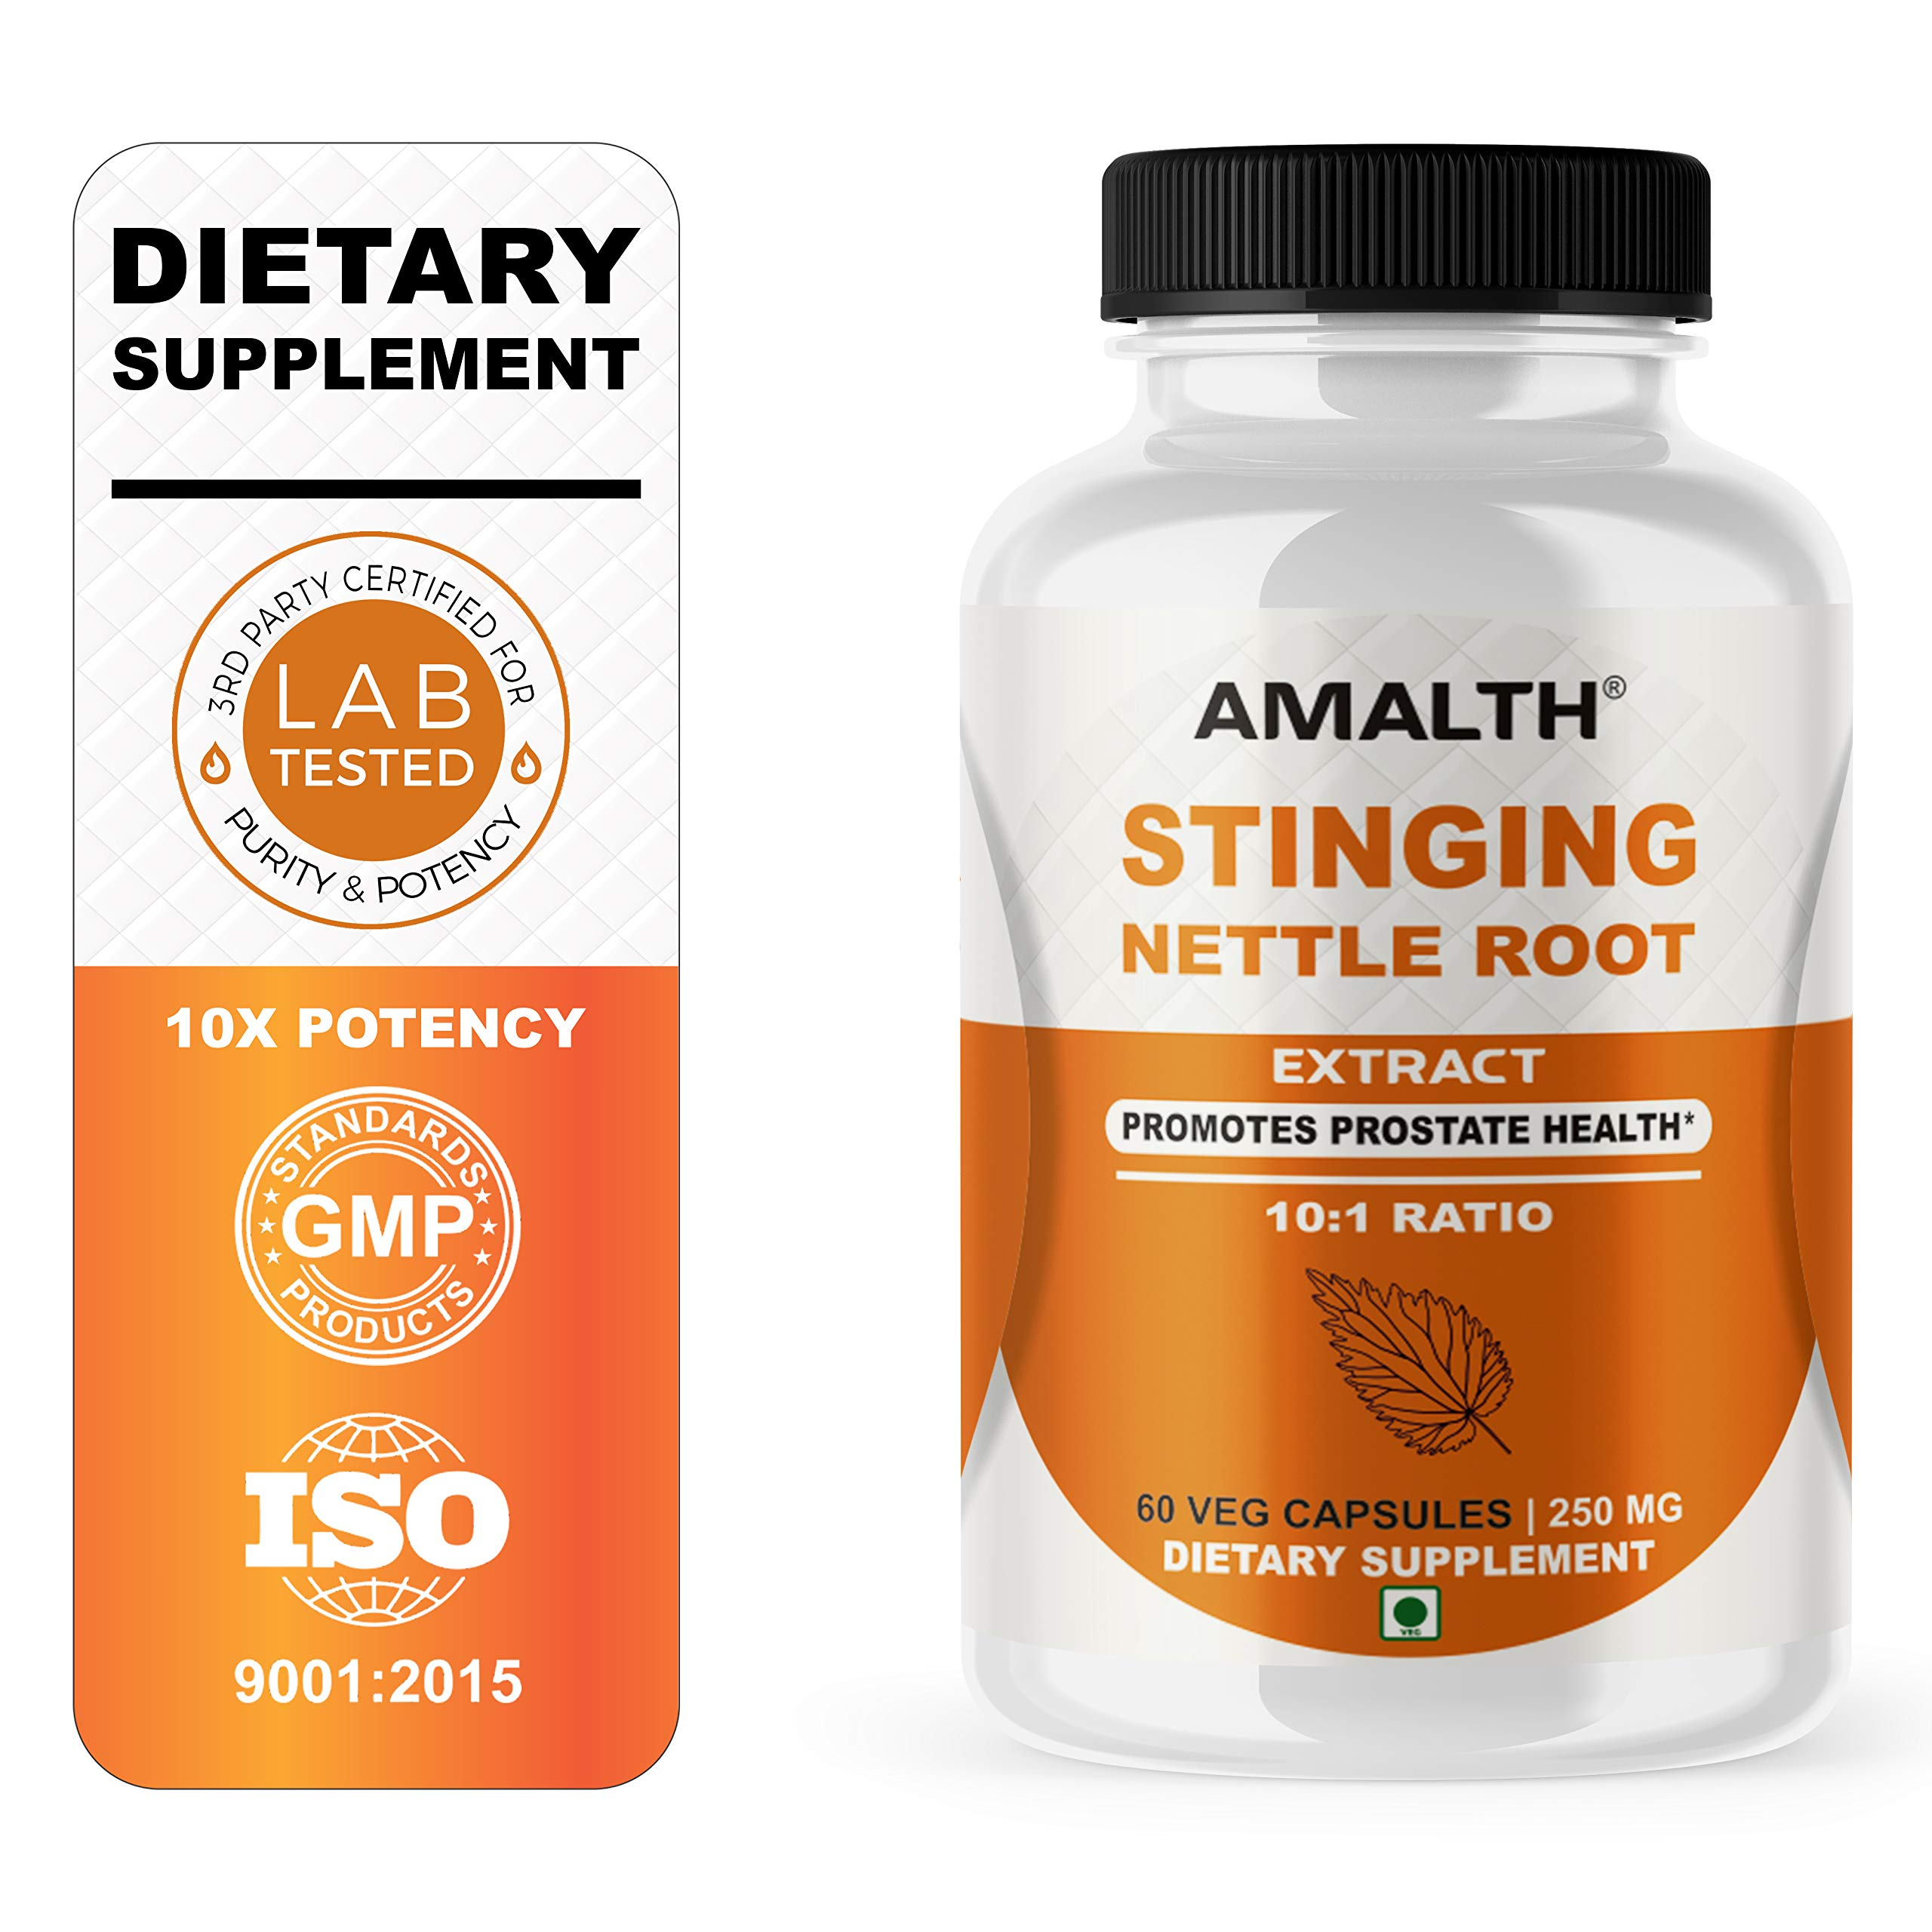 Stinging Nettle Root Extract with Utrica Dioca 250 mg Capsules for Promotes Prodtste Men's Health| AMALTH